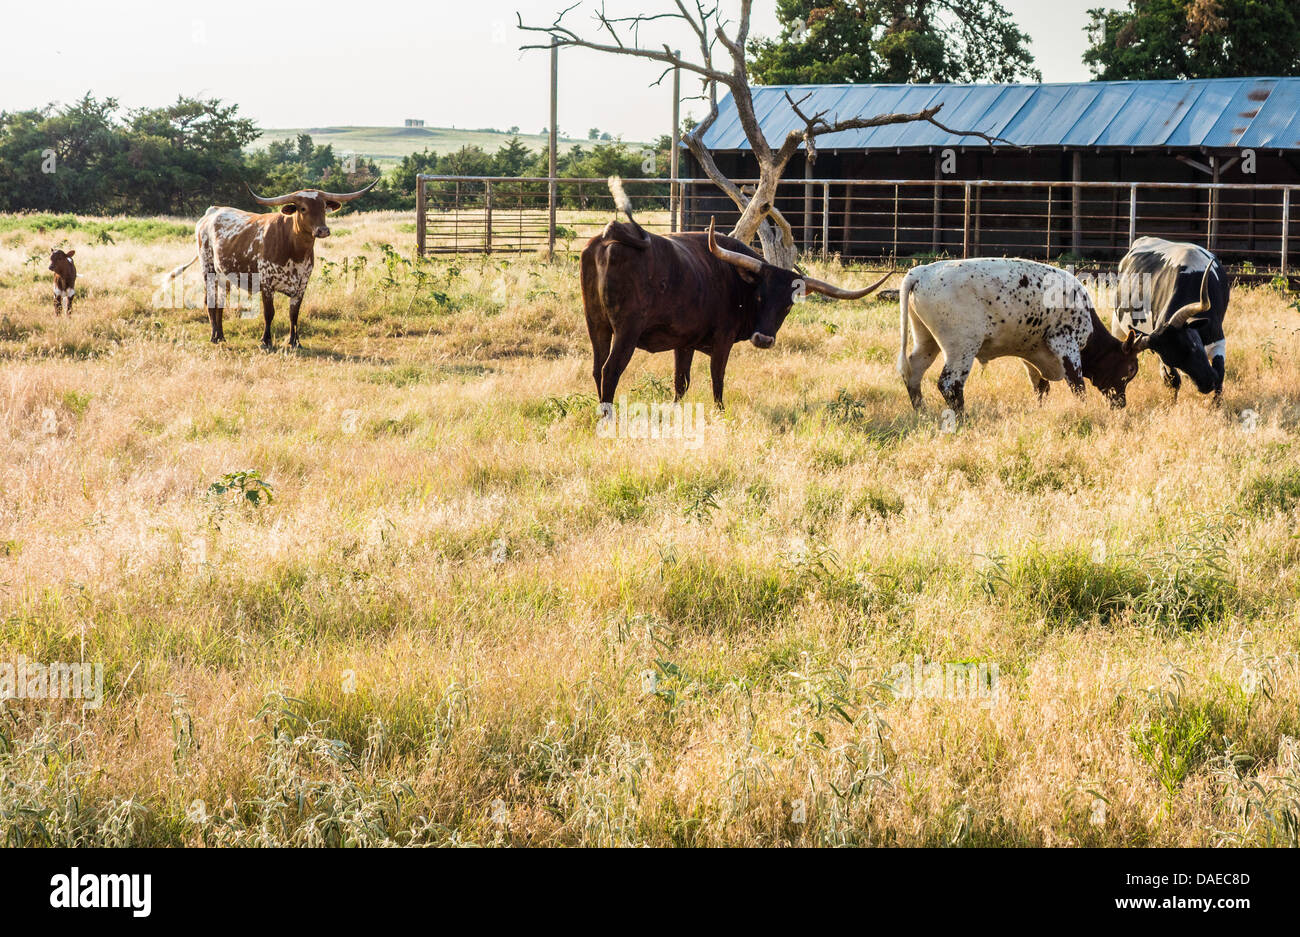 Longhorn cattle,bos, in a rural Oklahoma pasture with shed. USA - Stock Image